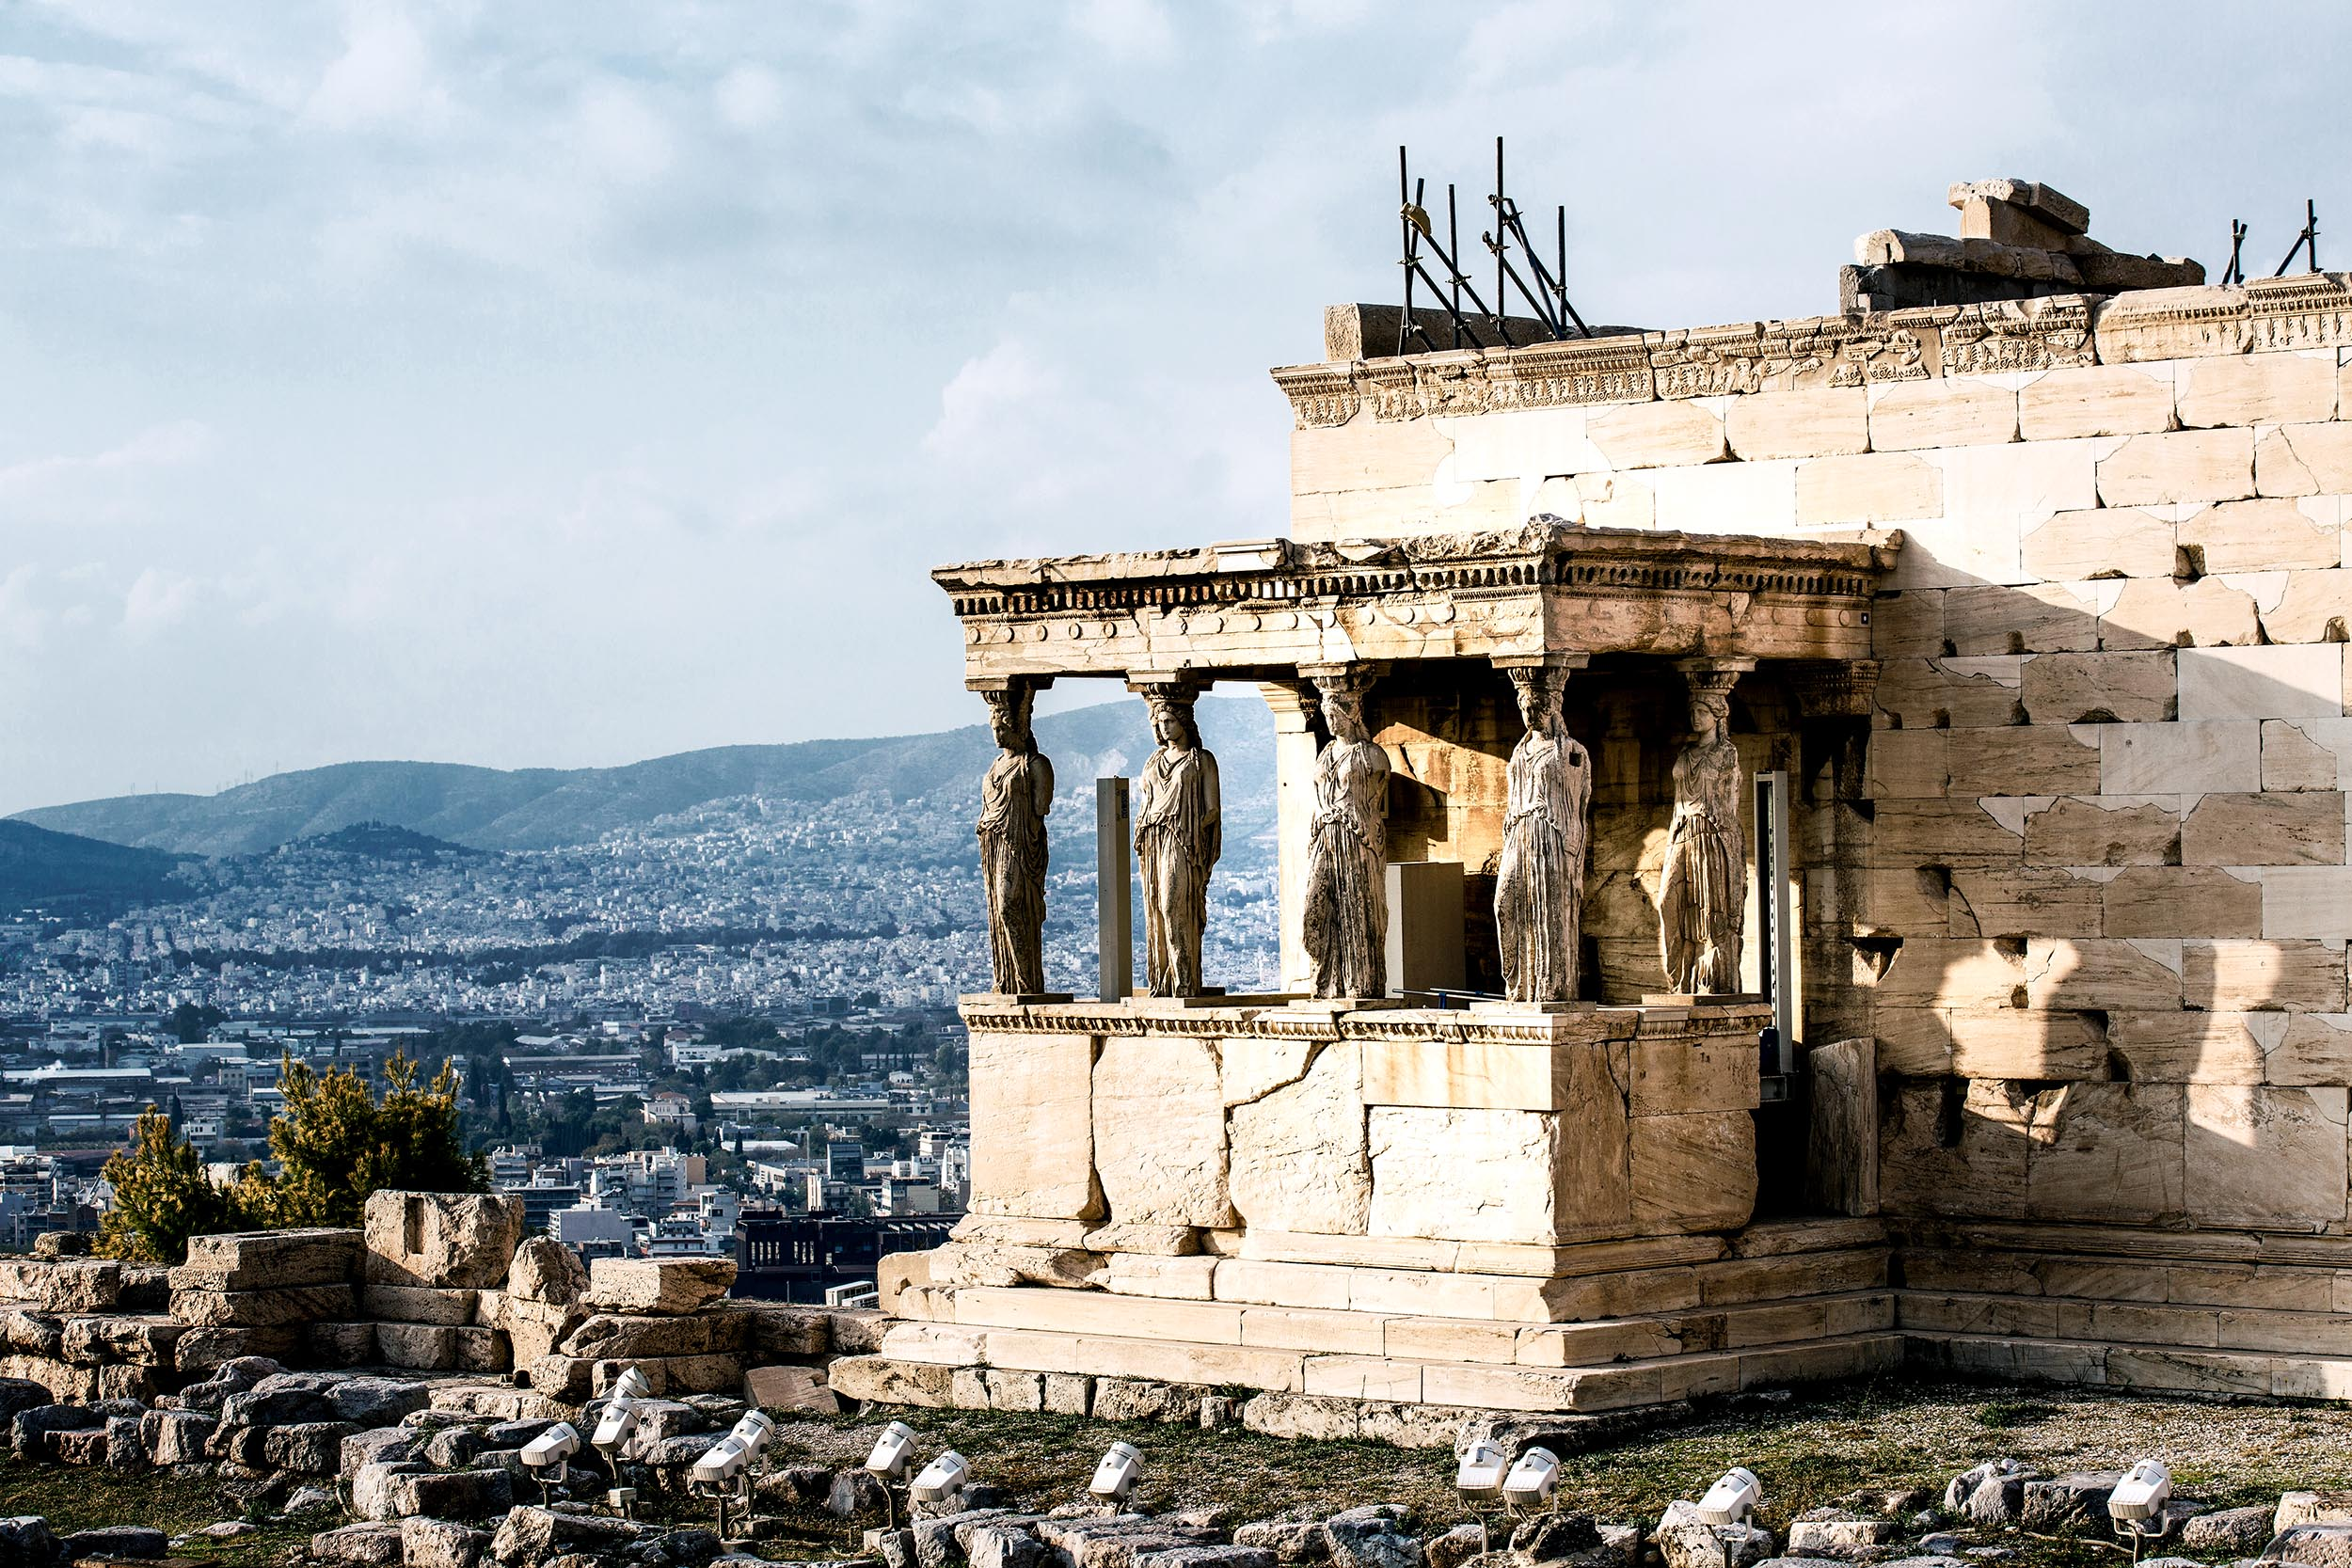 Six female statues supporting the roof of a porch at the crumbling Erechtheion temple, Athens